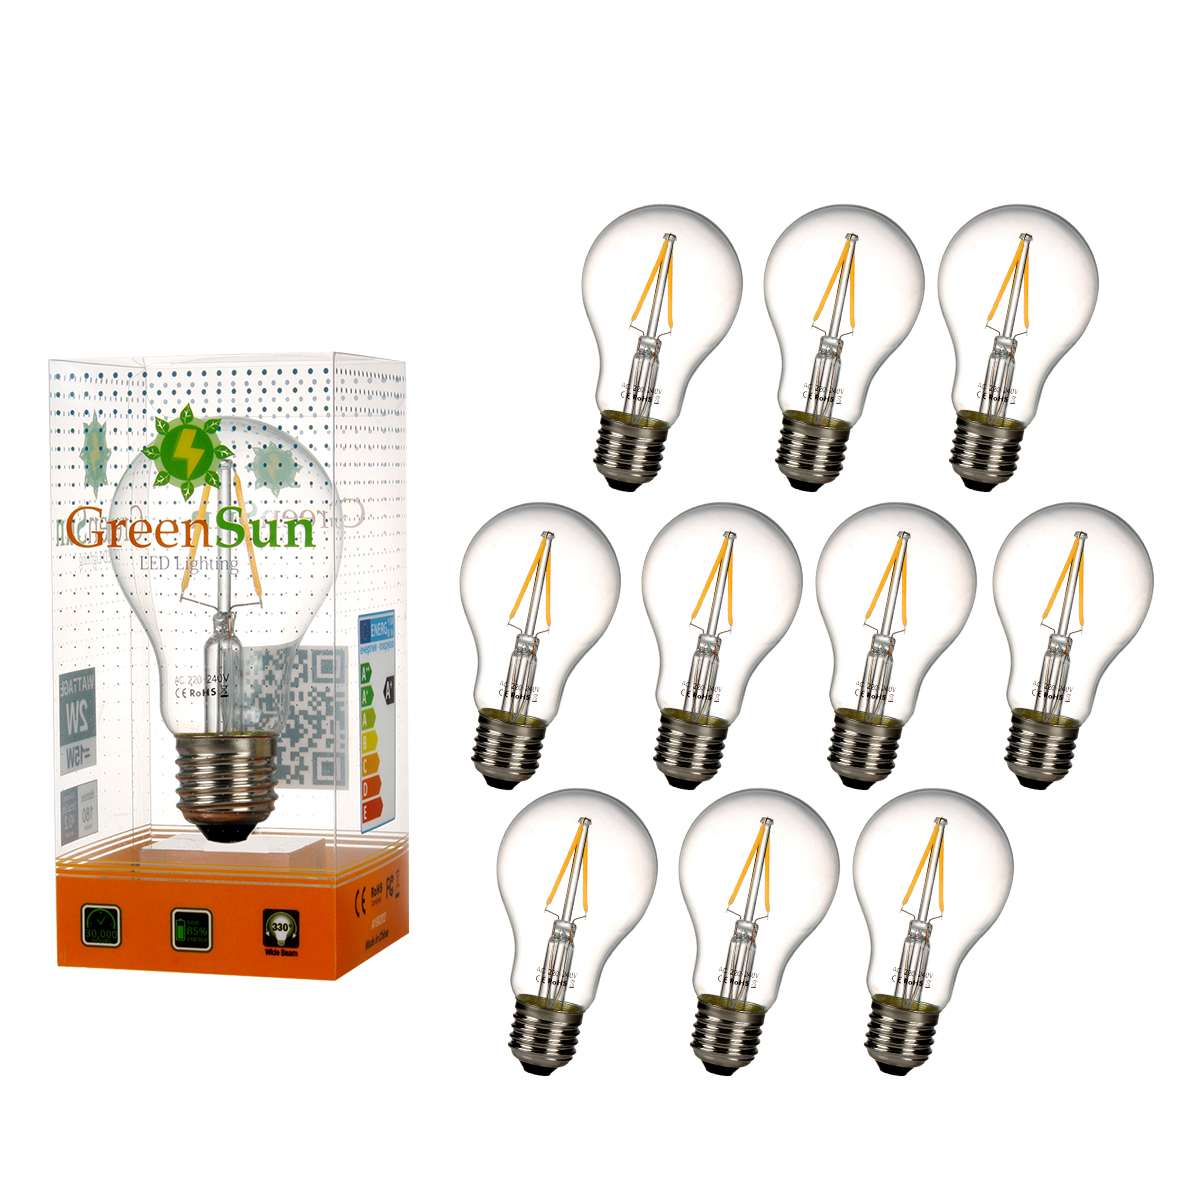 10Pcs E27 2W Edison Filament Warm White LED Energy Saving Bulb Light Lamp high brightness 1pcs led edison bulb indoor led light clear glass ac220 230v e27 2w 4w 6w 8w led filament bulb white warm white